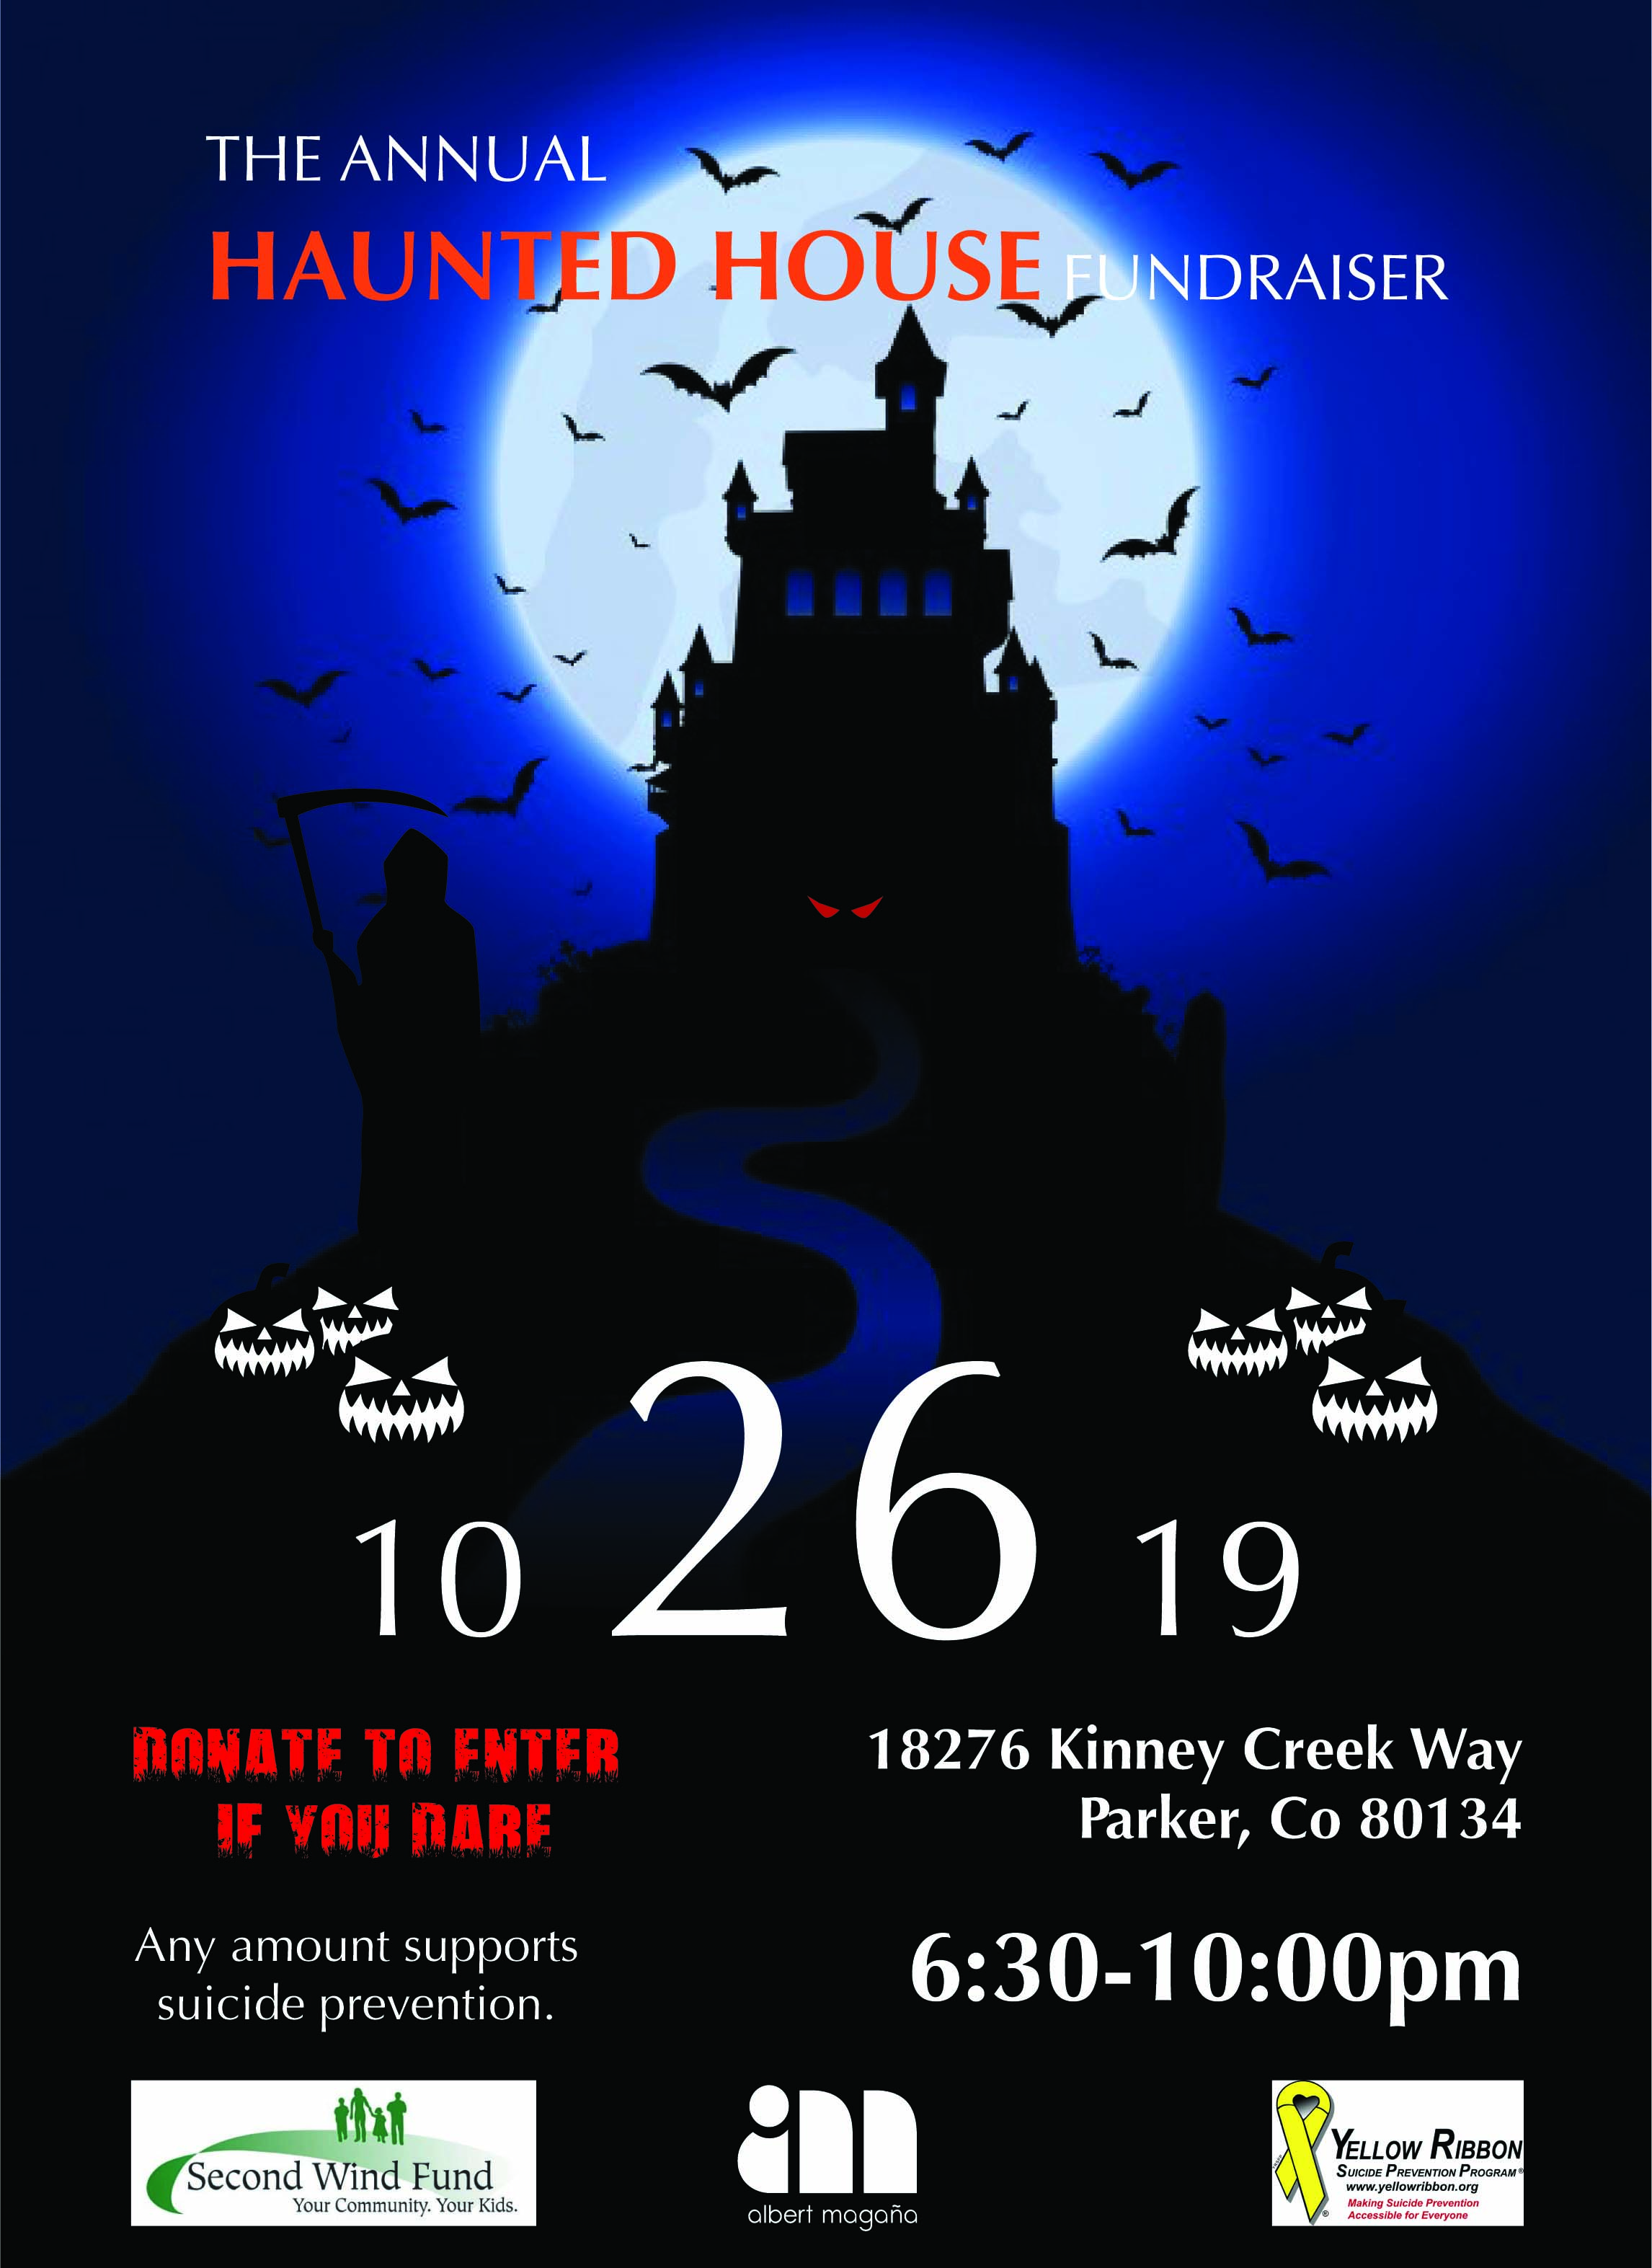 Haunted_House_Fundraiser